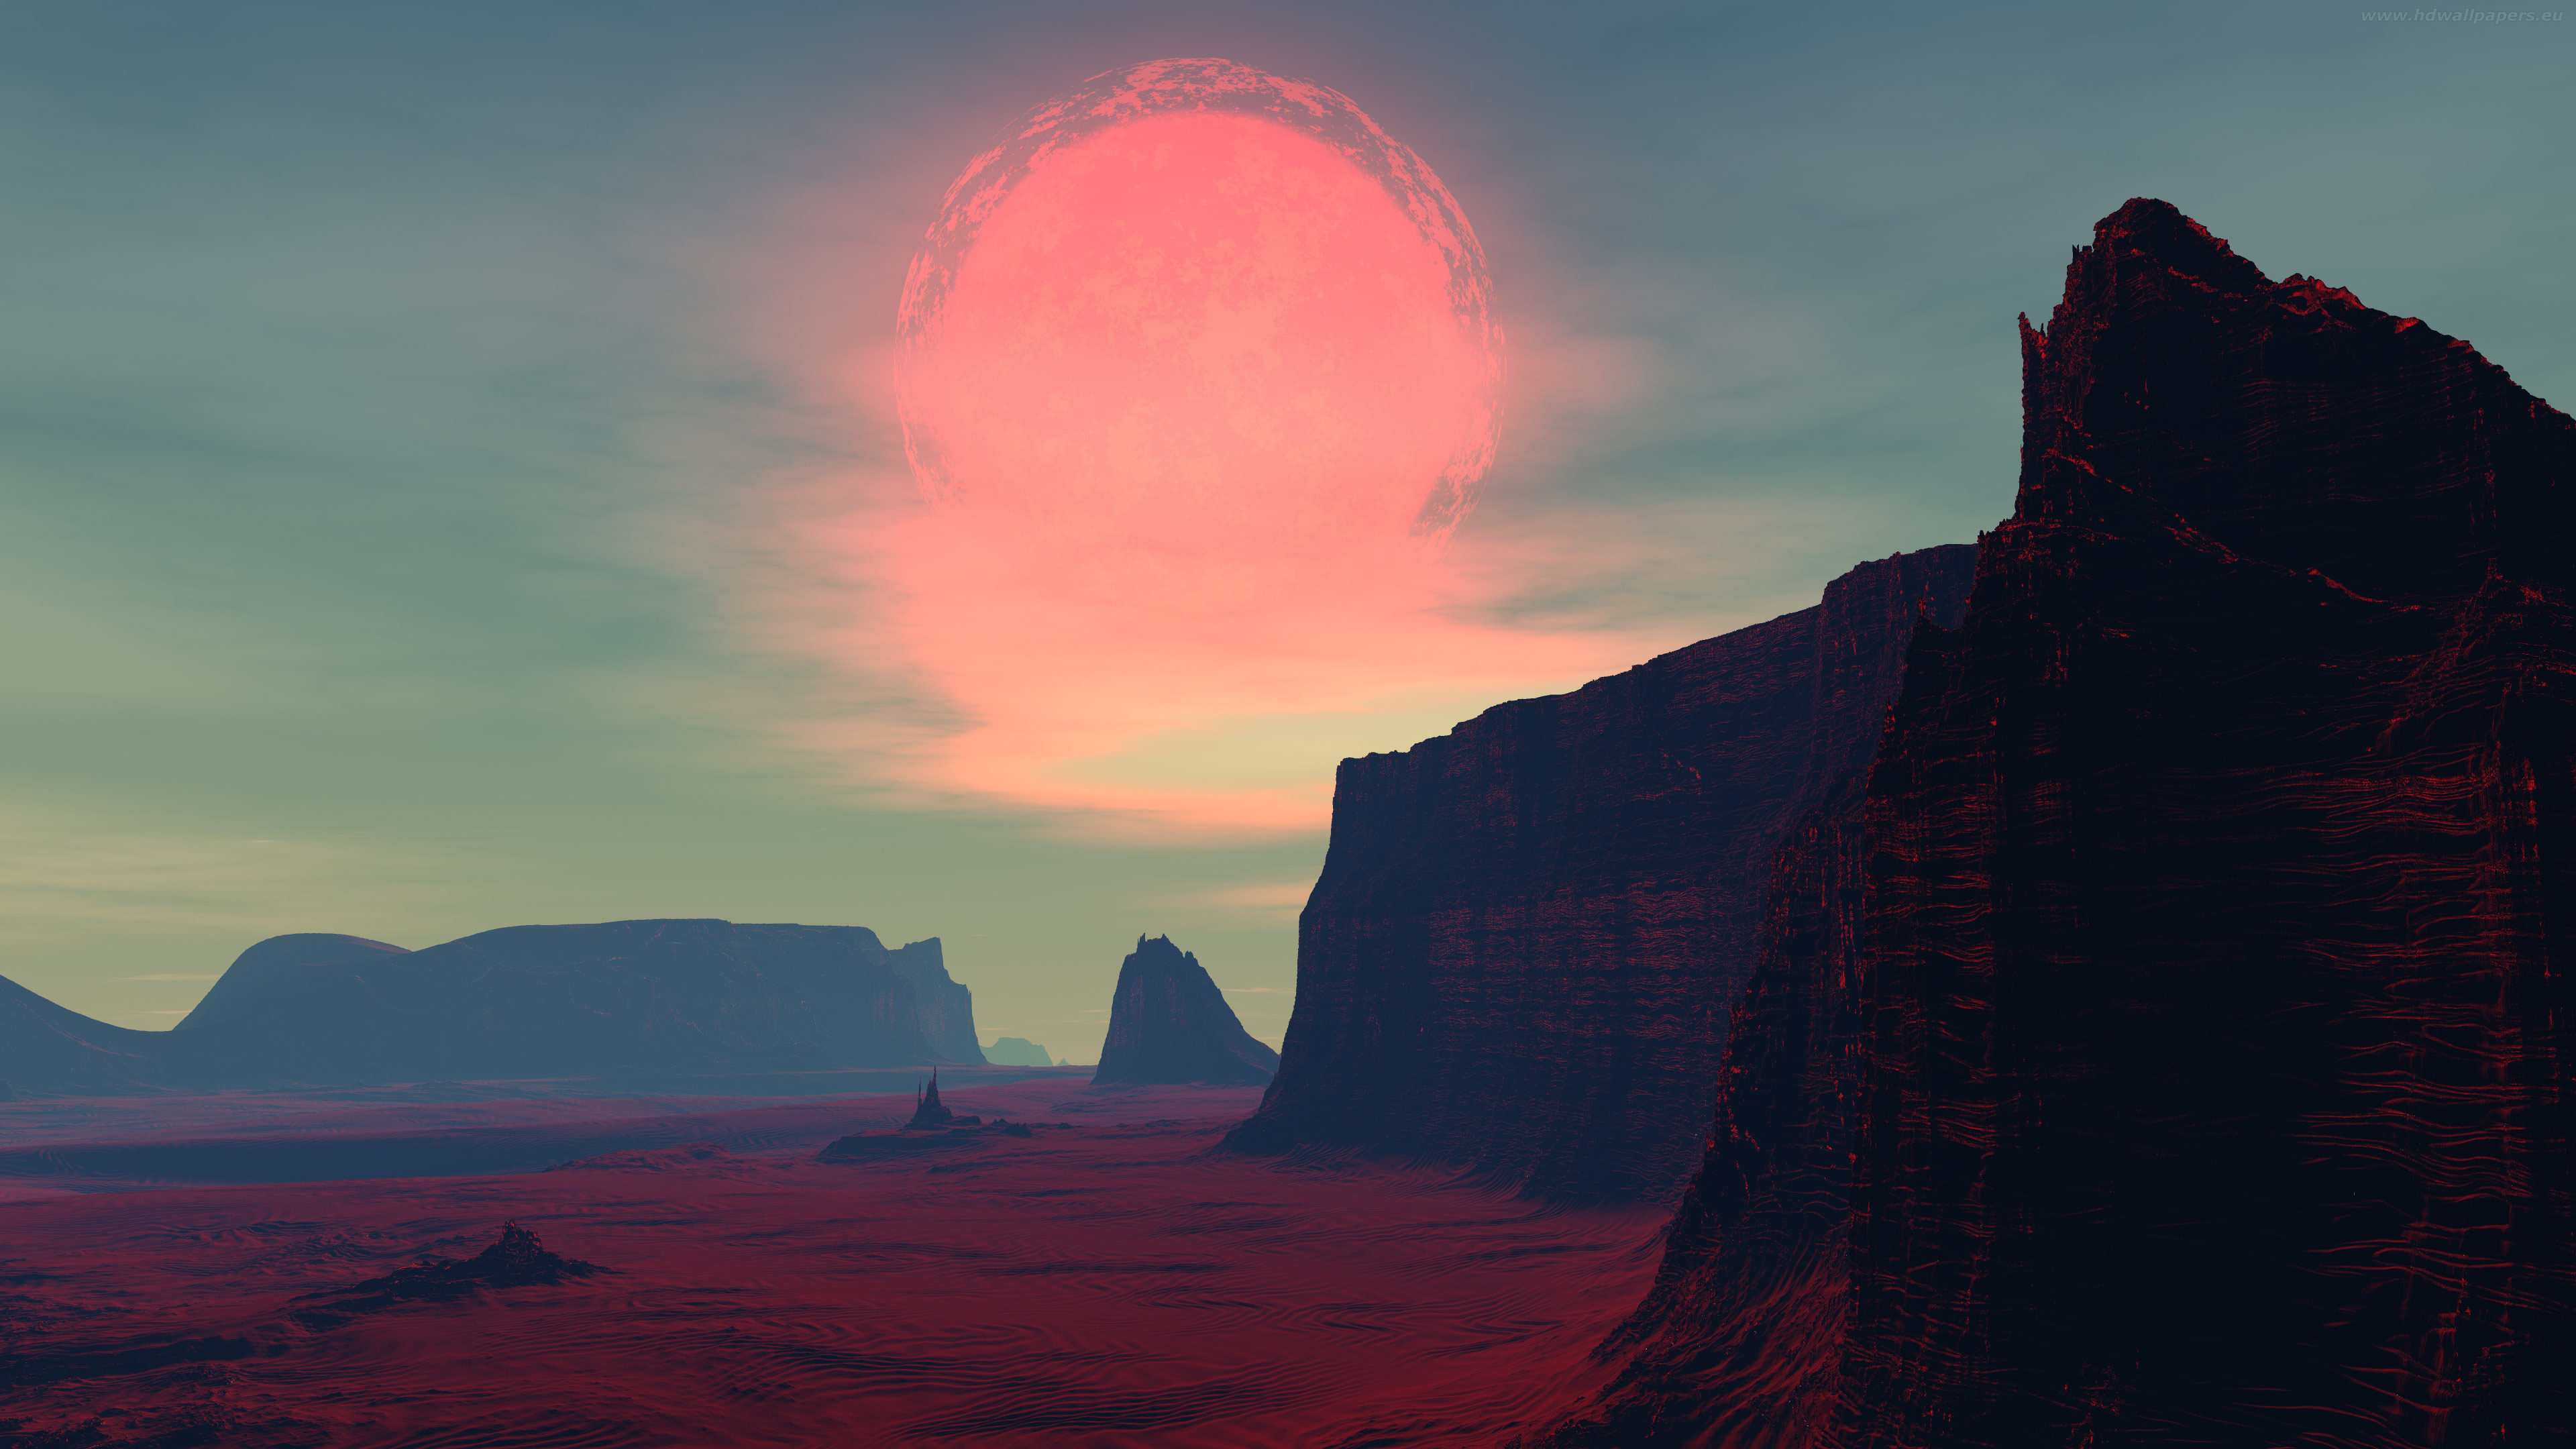 red-sun-planet-maximumshadow 3840x2160